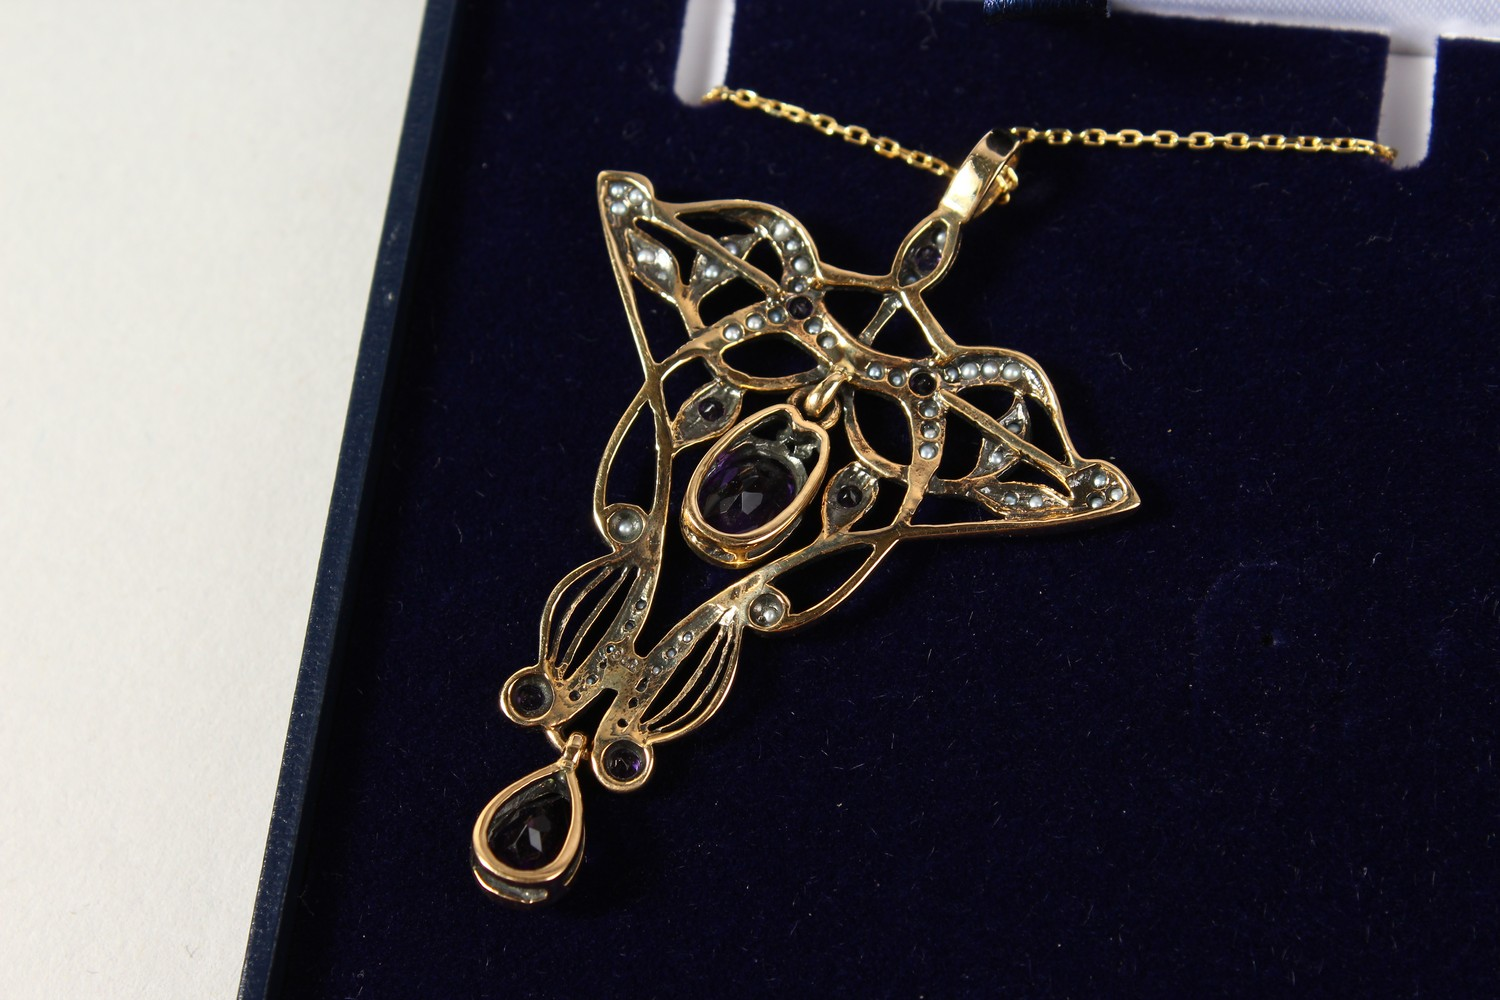 Lot 1760 - A 9CT GOLD, AMETHYST AND SEED PEARL ART NOUVEAU STYLE PENDANT AND CHAIN.